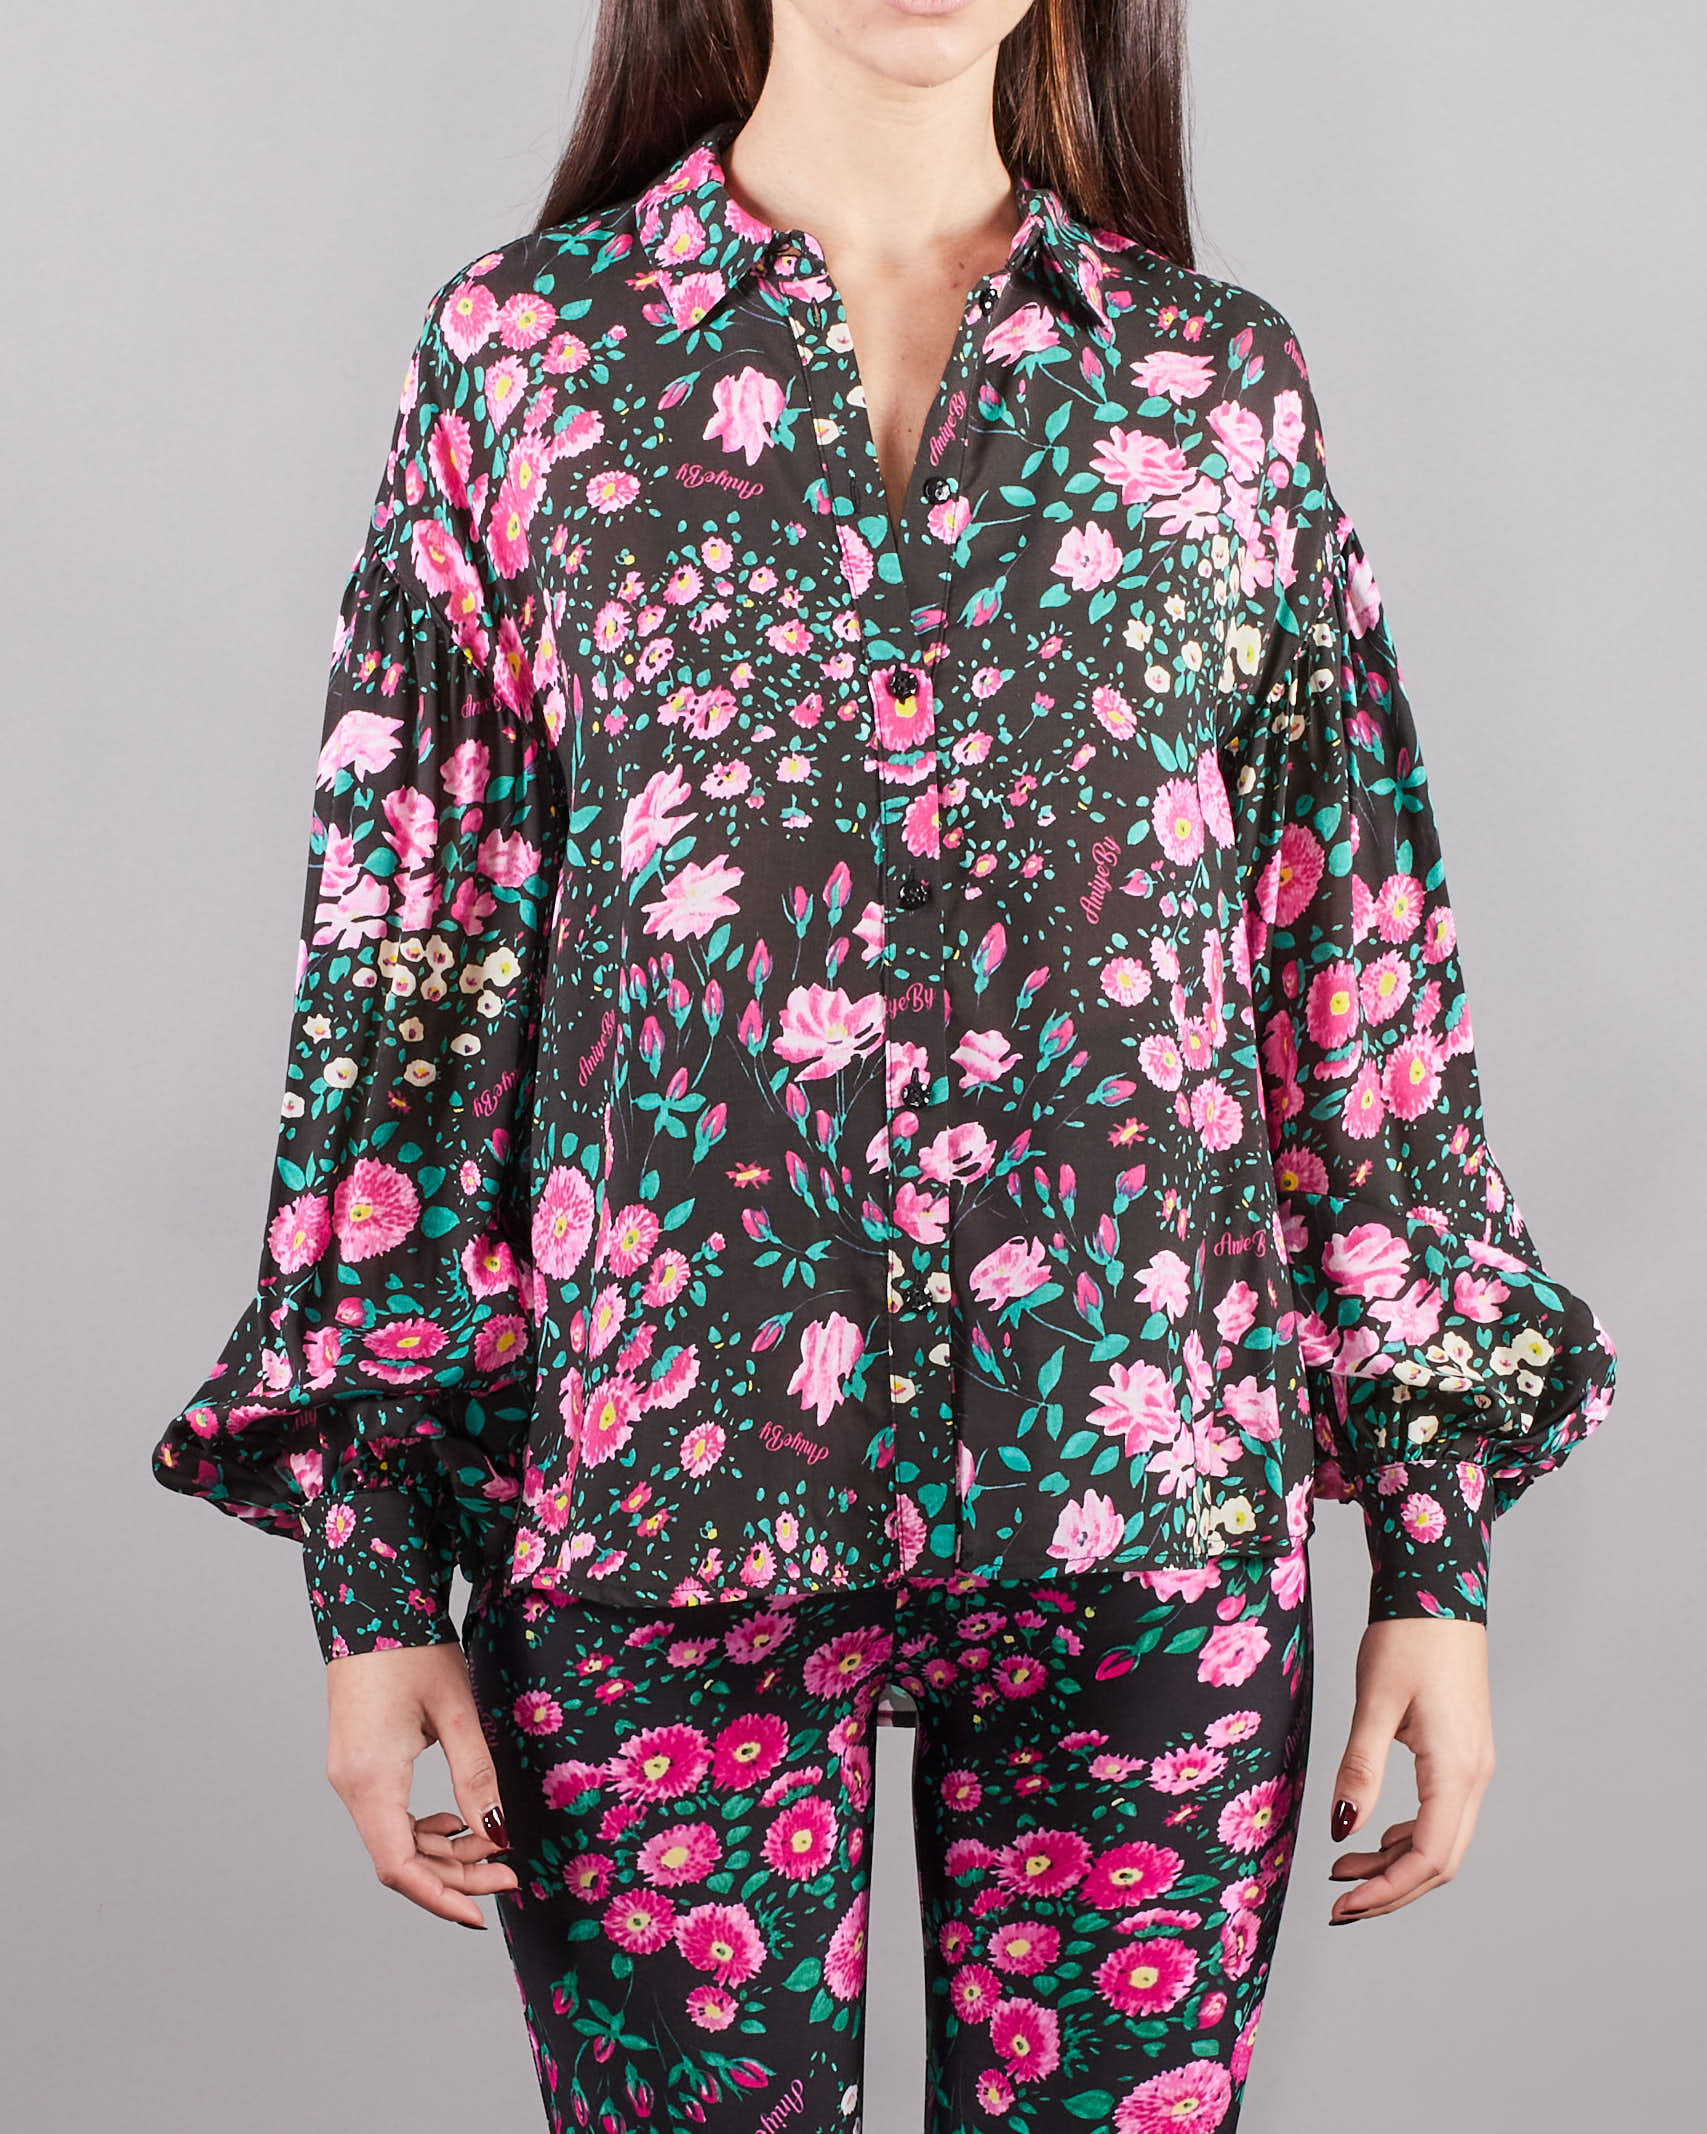 Camicia stampa floreale Aniye By ANIYE BY | Camicia | 1857652025